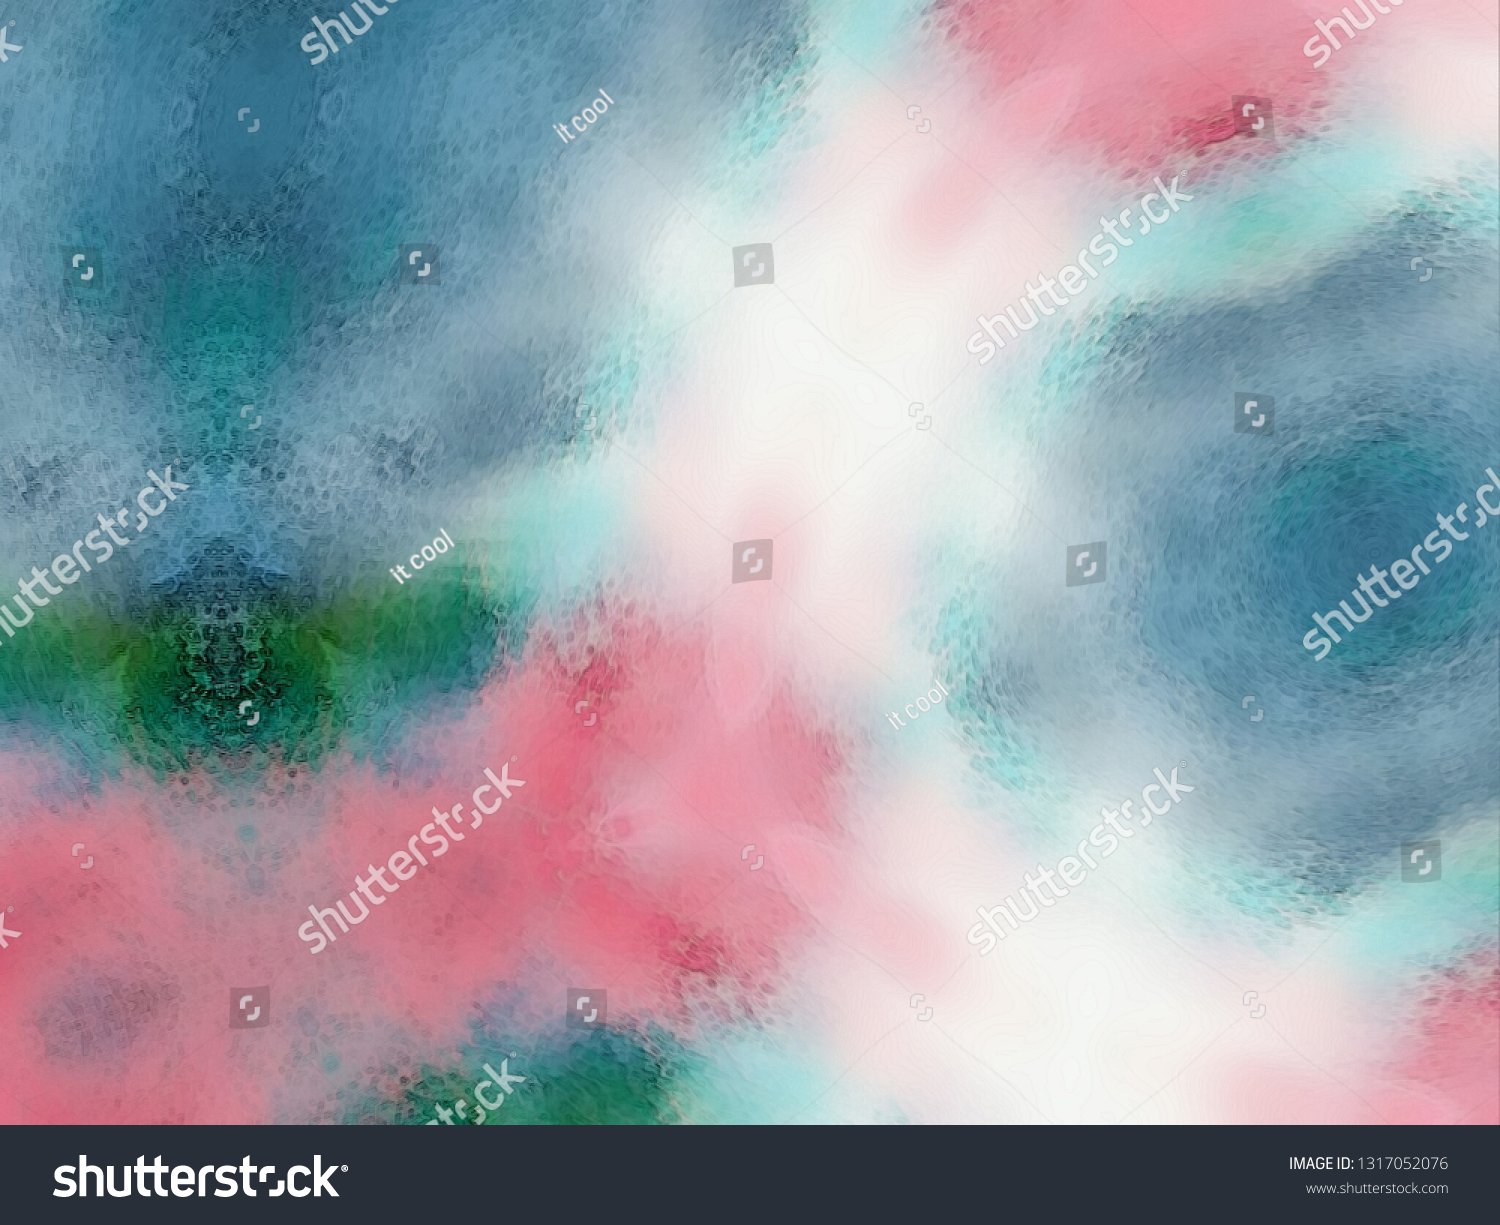 Blur abstraction oil paintings for sale stock creative design background with textured brush strokes